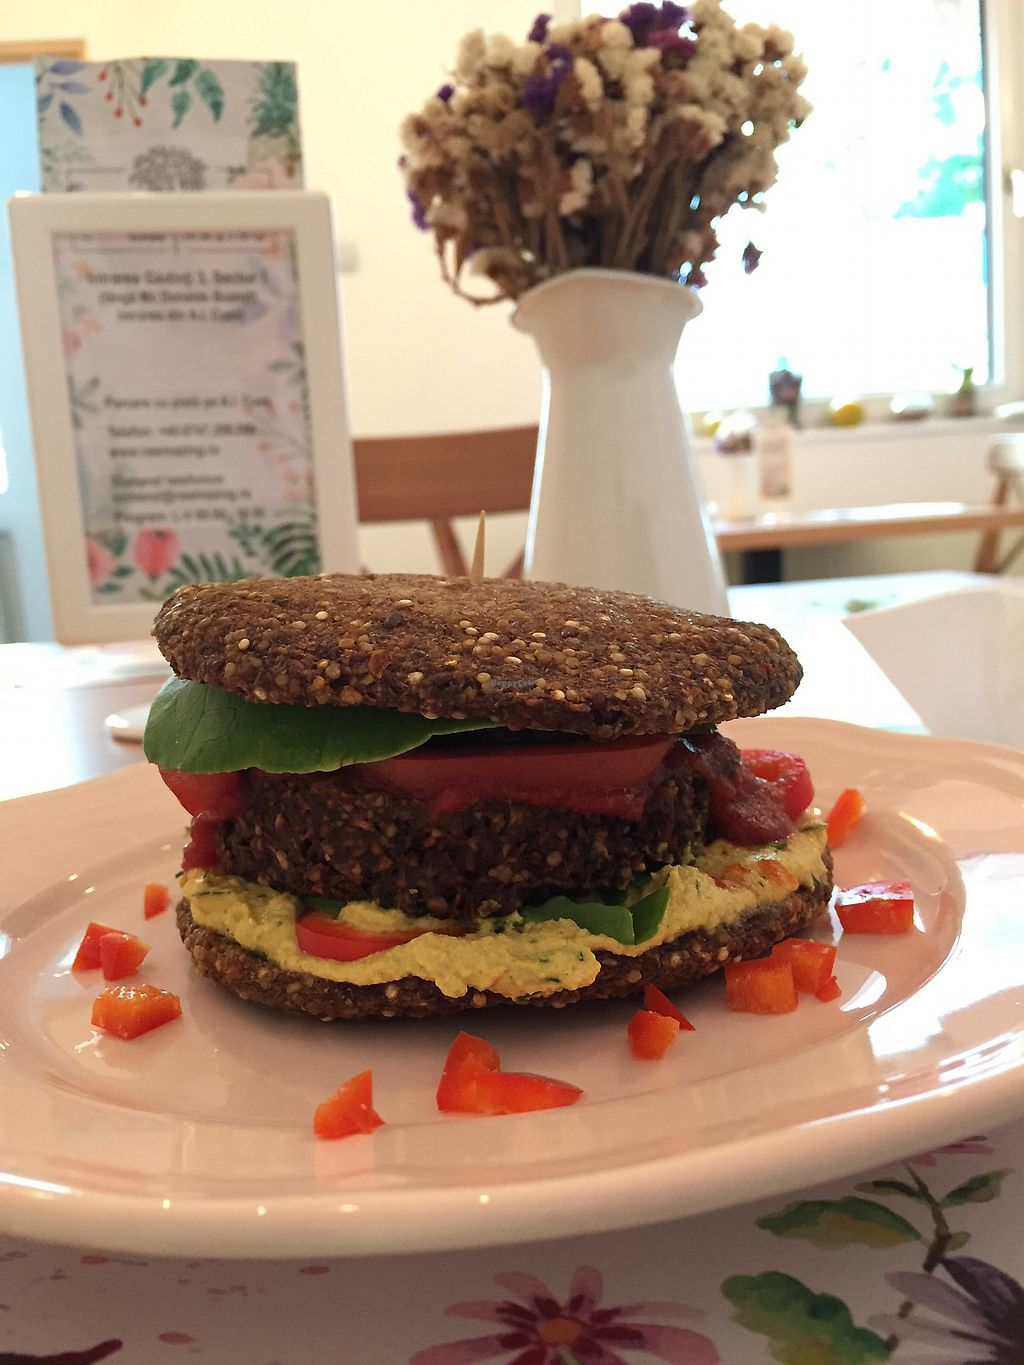 """Photo of Rawmazing  by <a href=""""/members/profile/Knauji82"""">Knauji82</a> <br/>Raw burger <br/> October 8, 2017  - <a href='/contact/abuse/image/50971/313154'>Report</a>"""